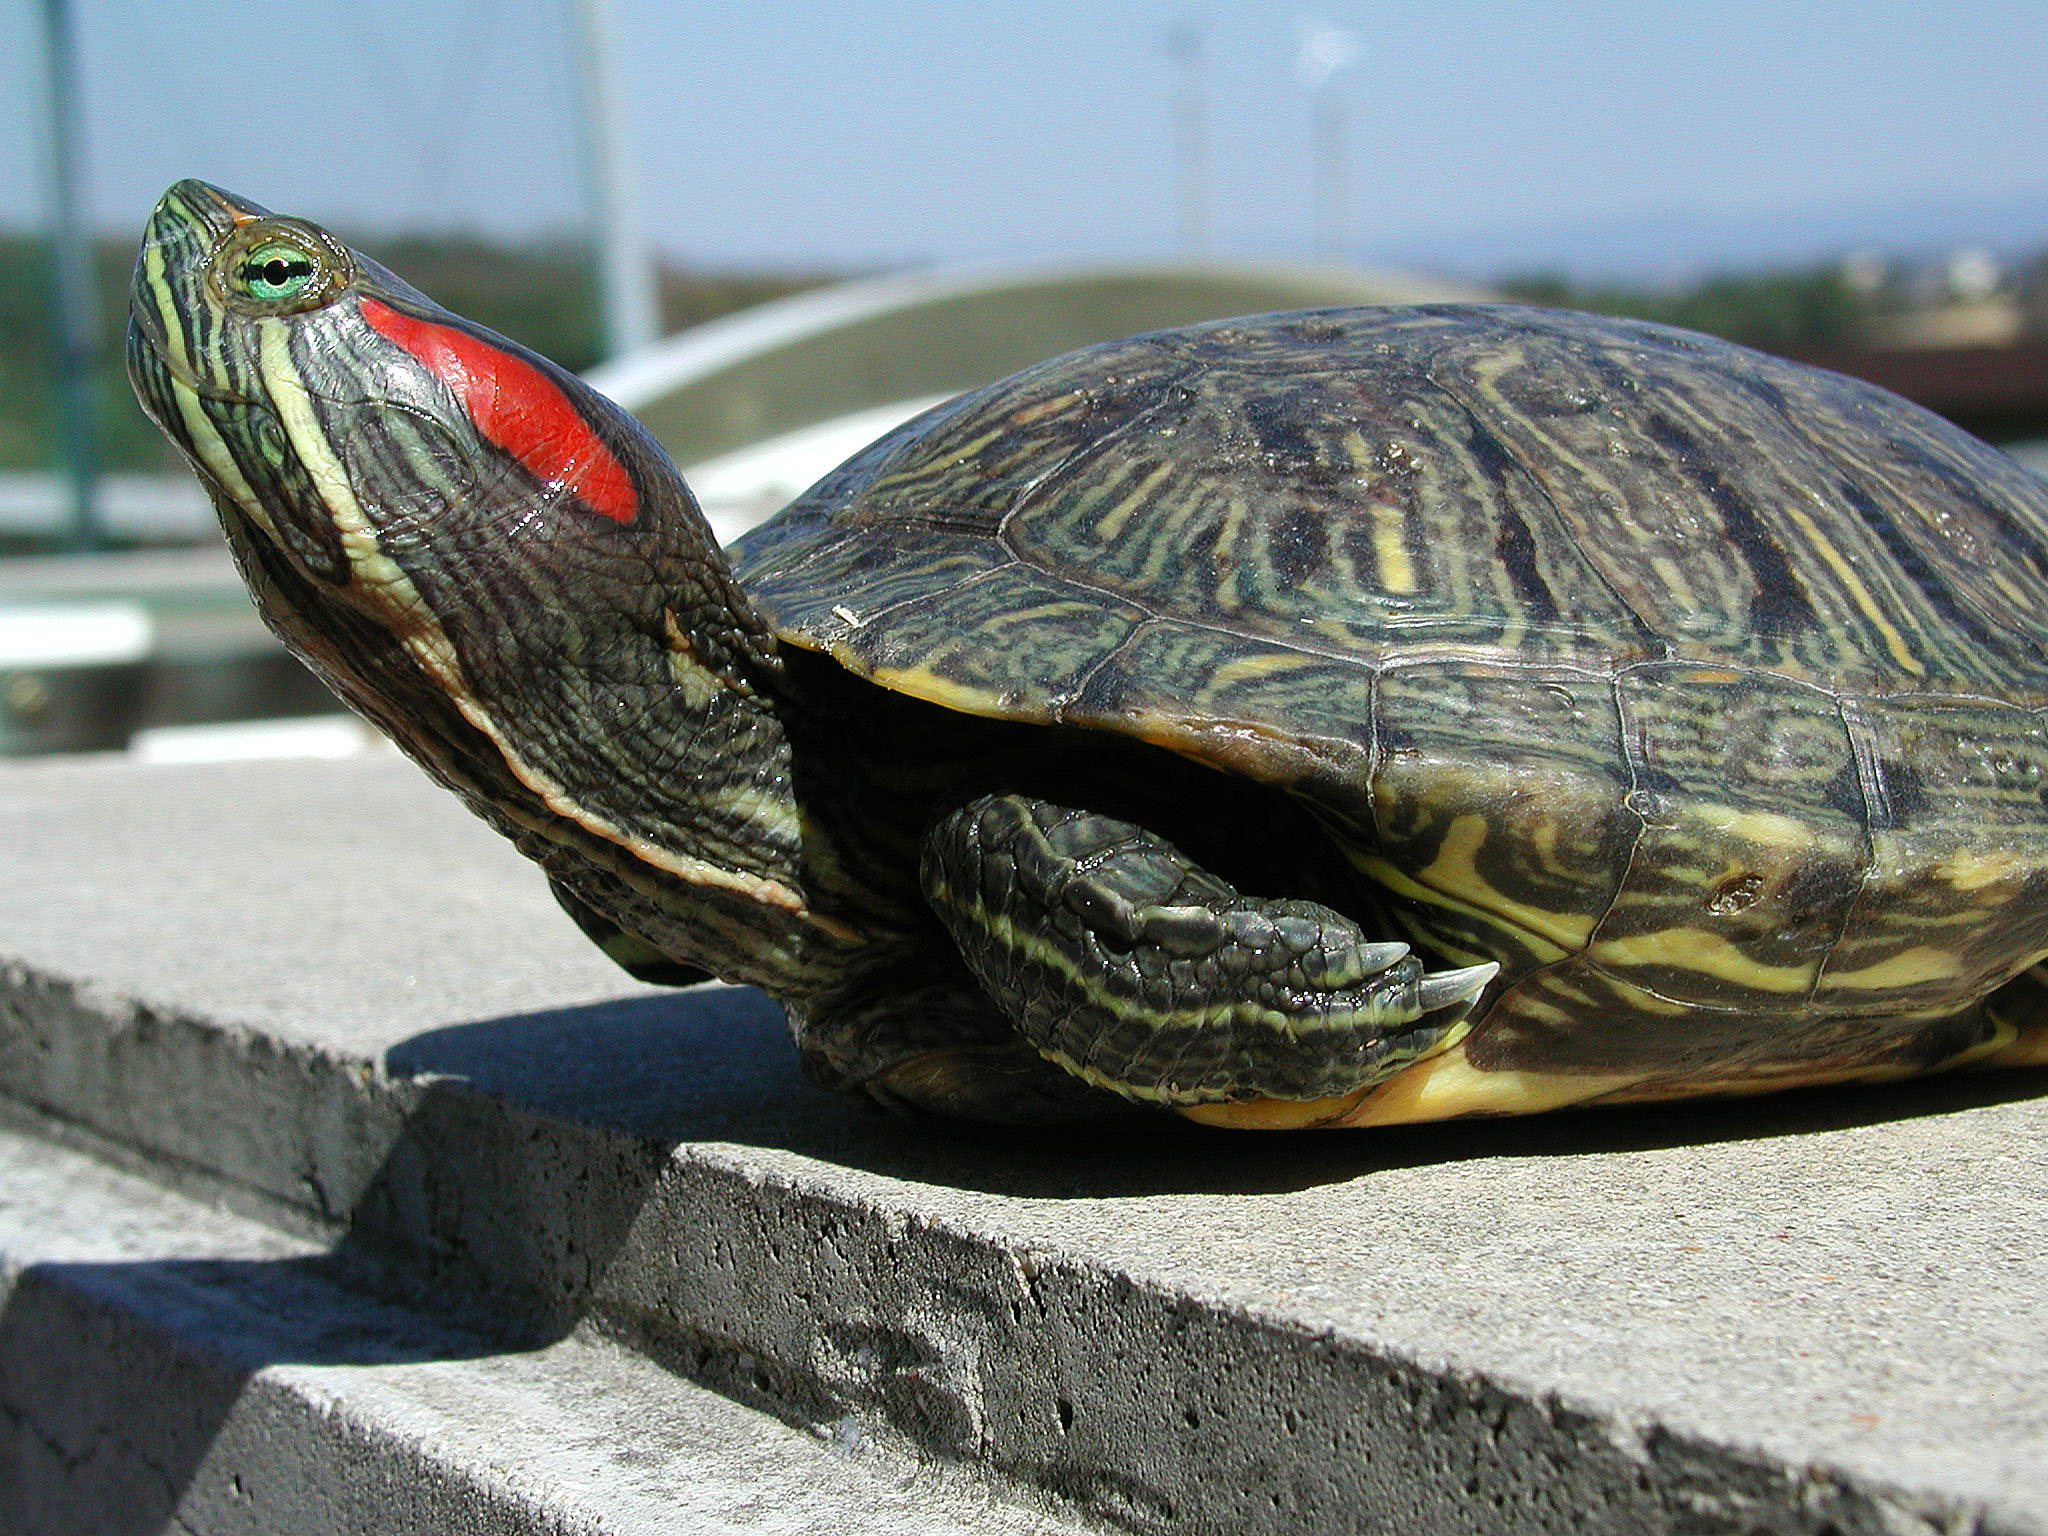 Japan has 8 million invasive red-eared sliders, seen here, and only around 1 million endemic turtles.   KYODO